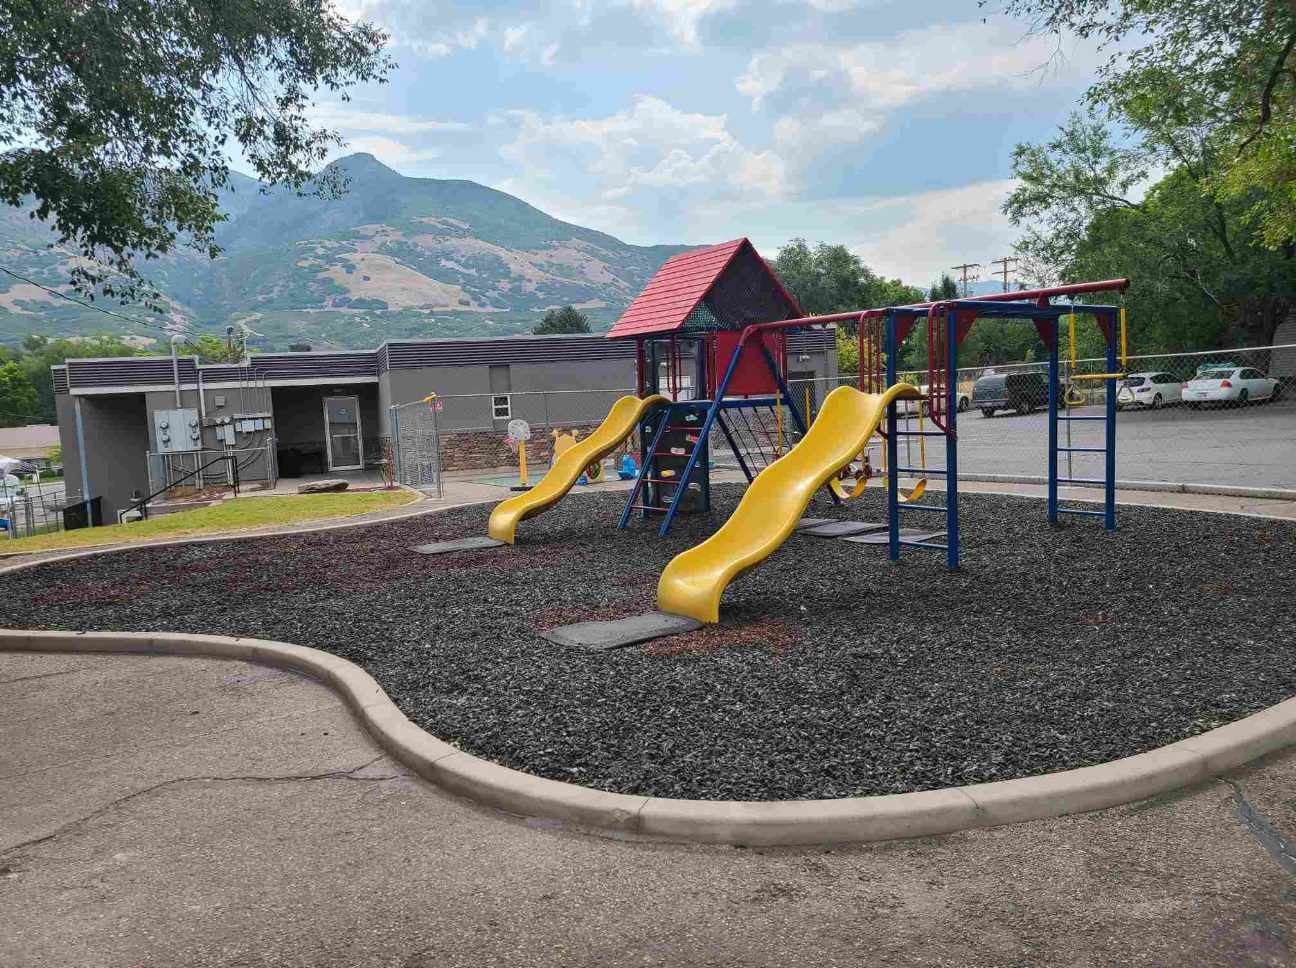 Discovery Playhouse East Ogden campus playground